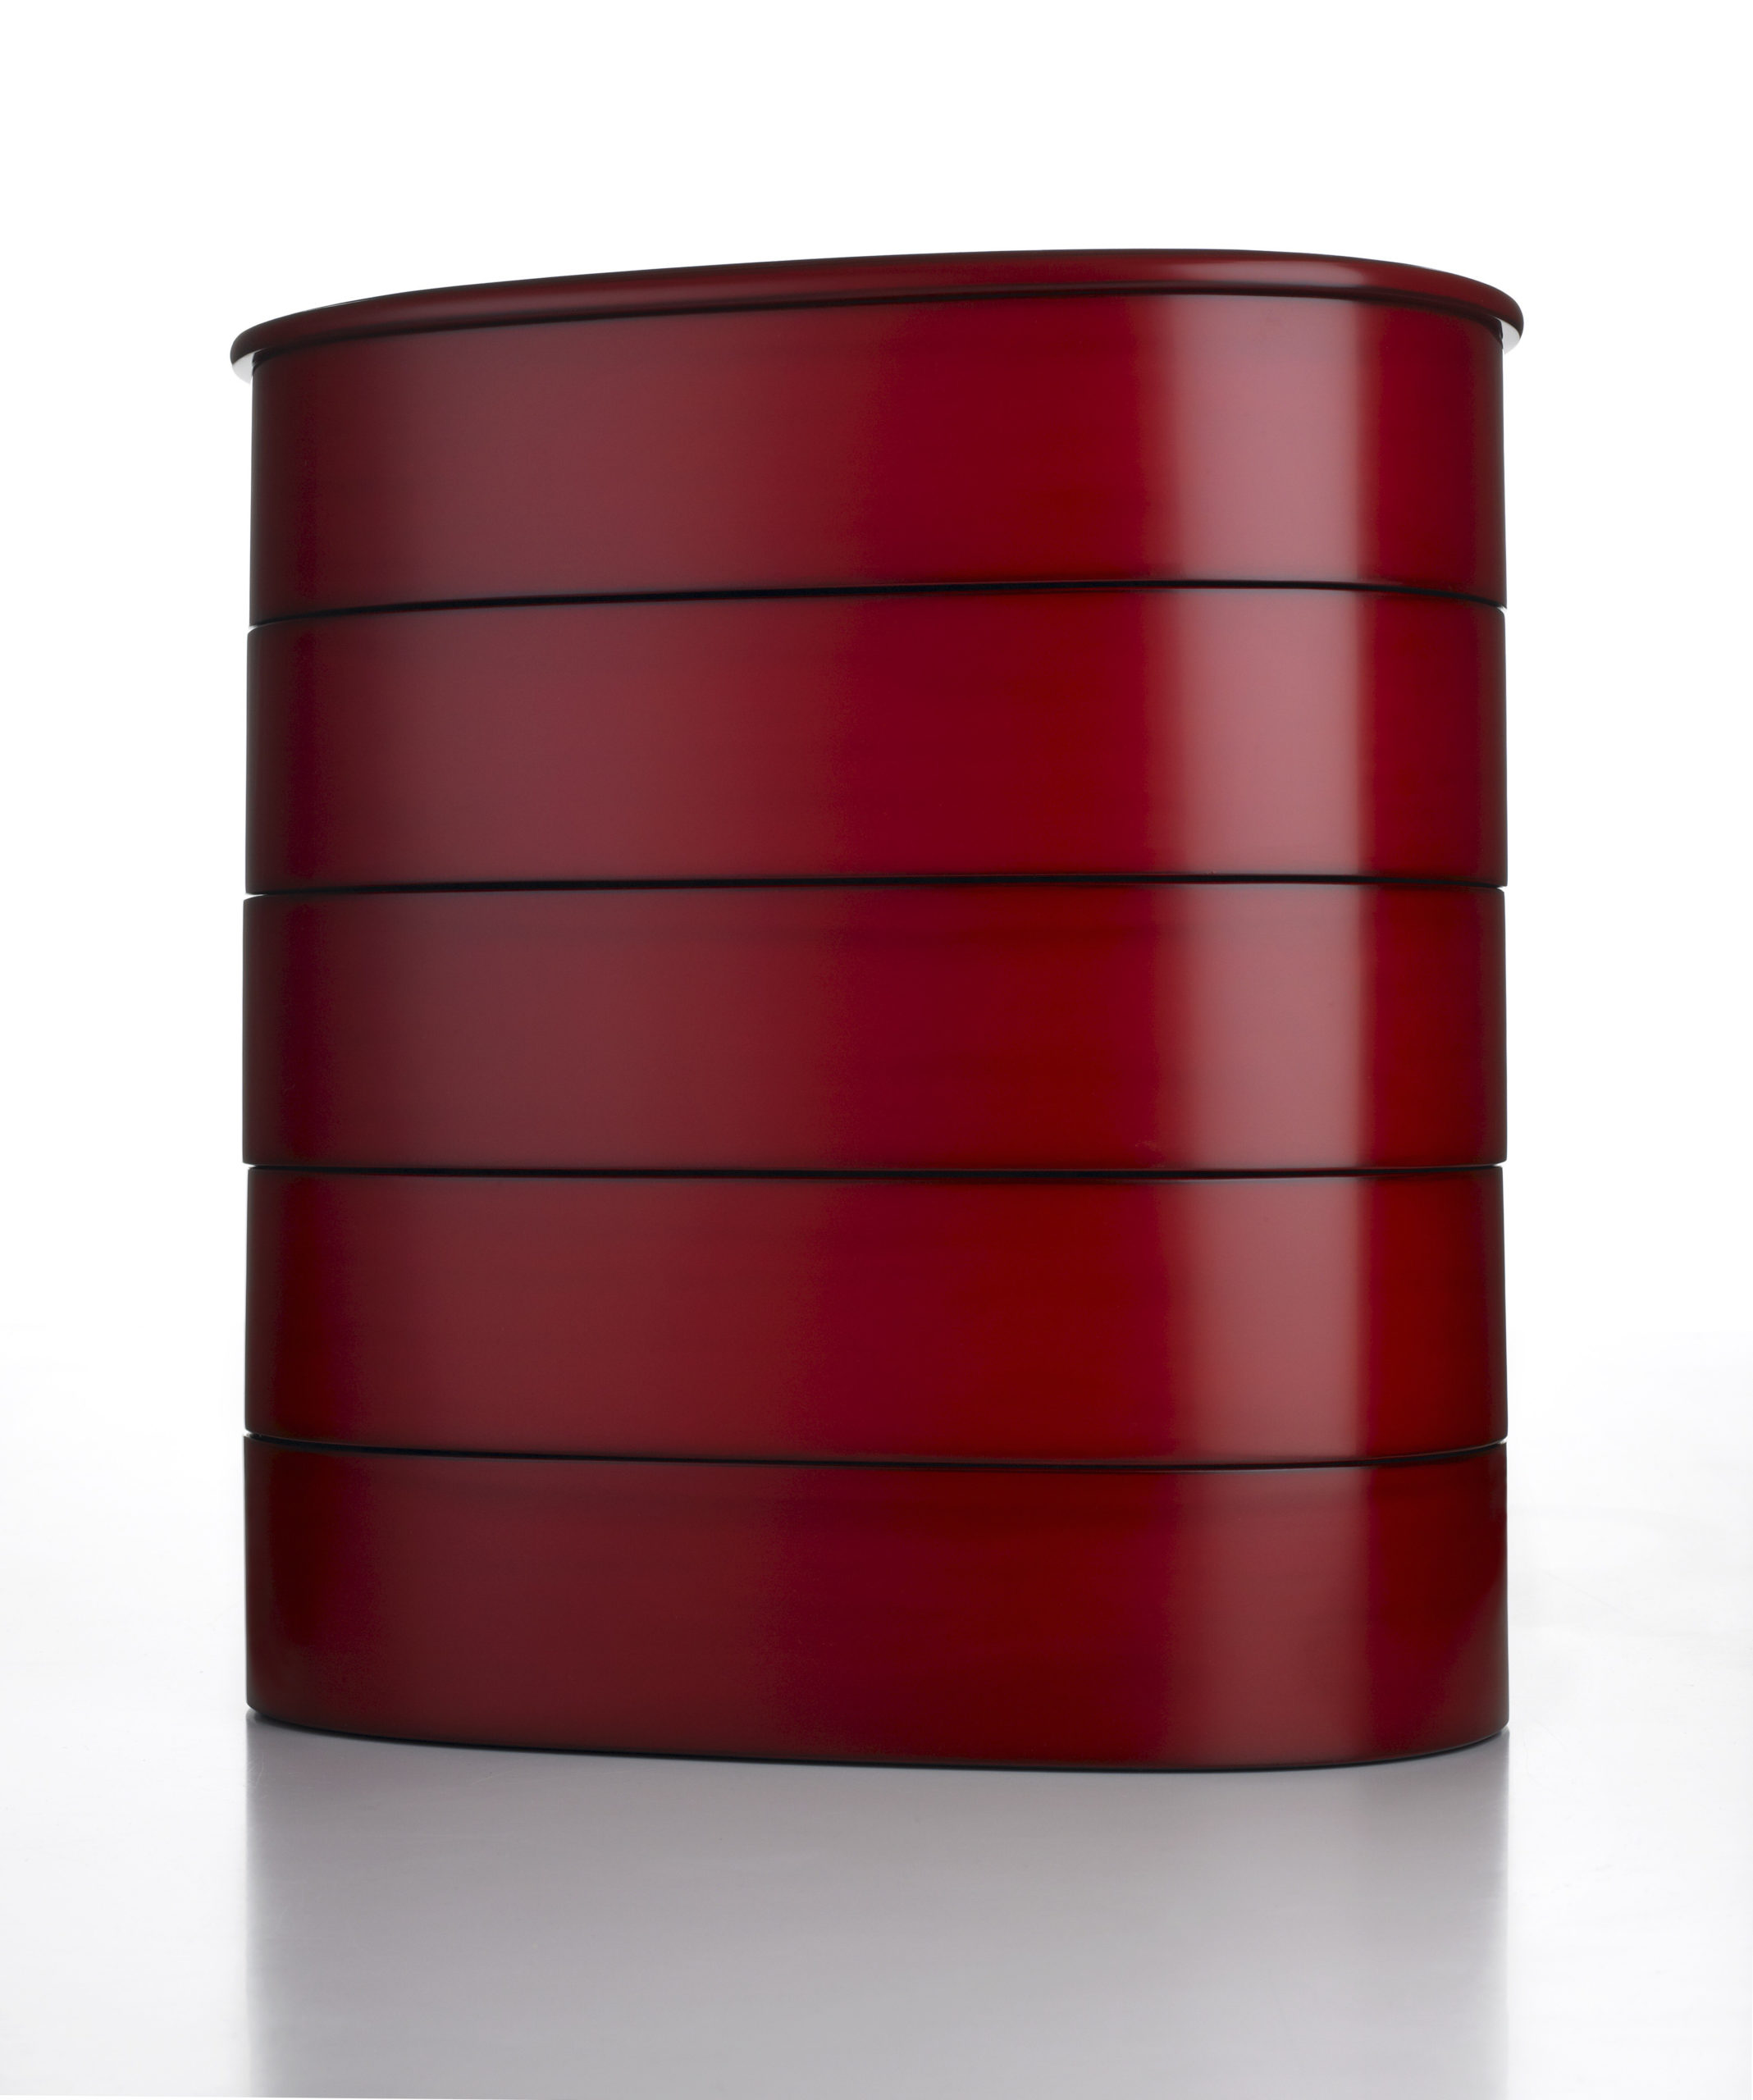 BENTWOOD FIVE-TIERED BOX (magewa go dan ju)  by KADO Isaburo (1940 –2006) Heisei period, early 2000s